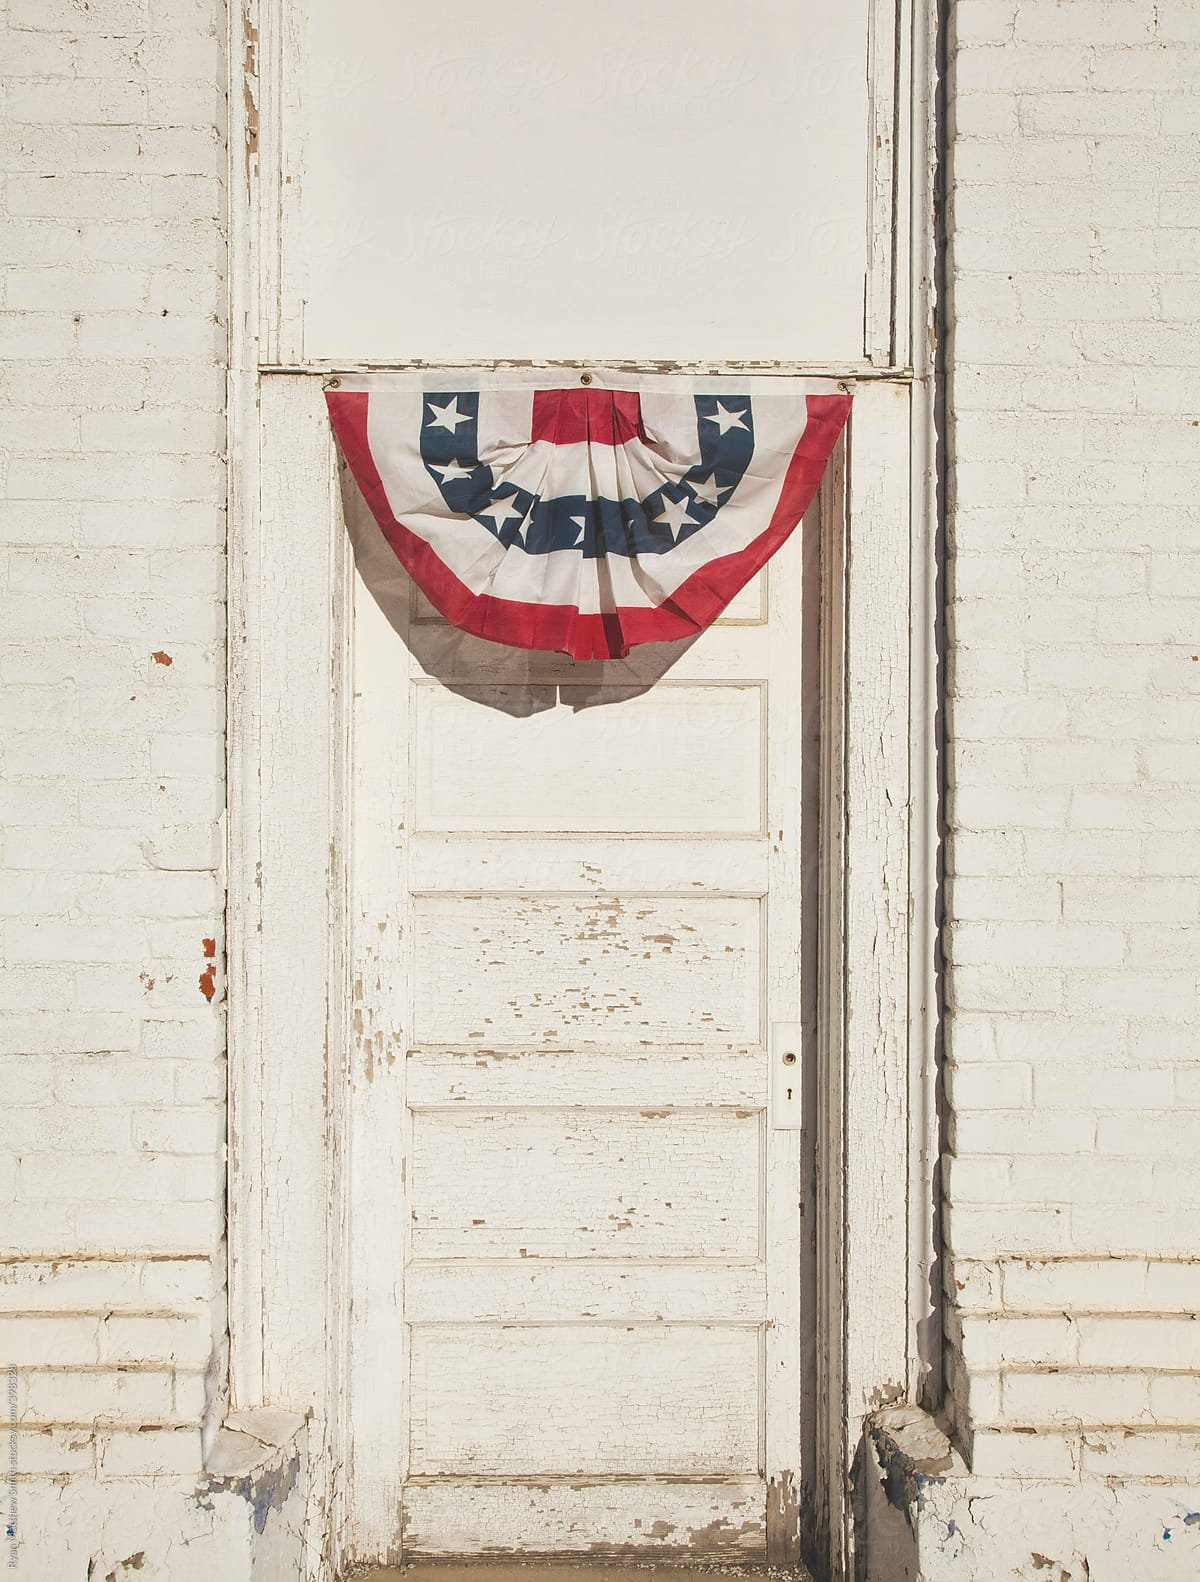 American Flag Fan Over Old White Door By Ryan Matthew Smith For Stocksy  United